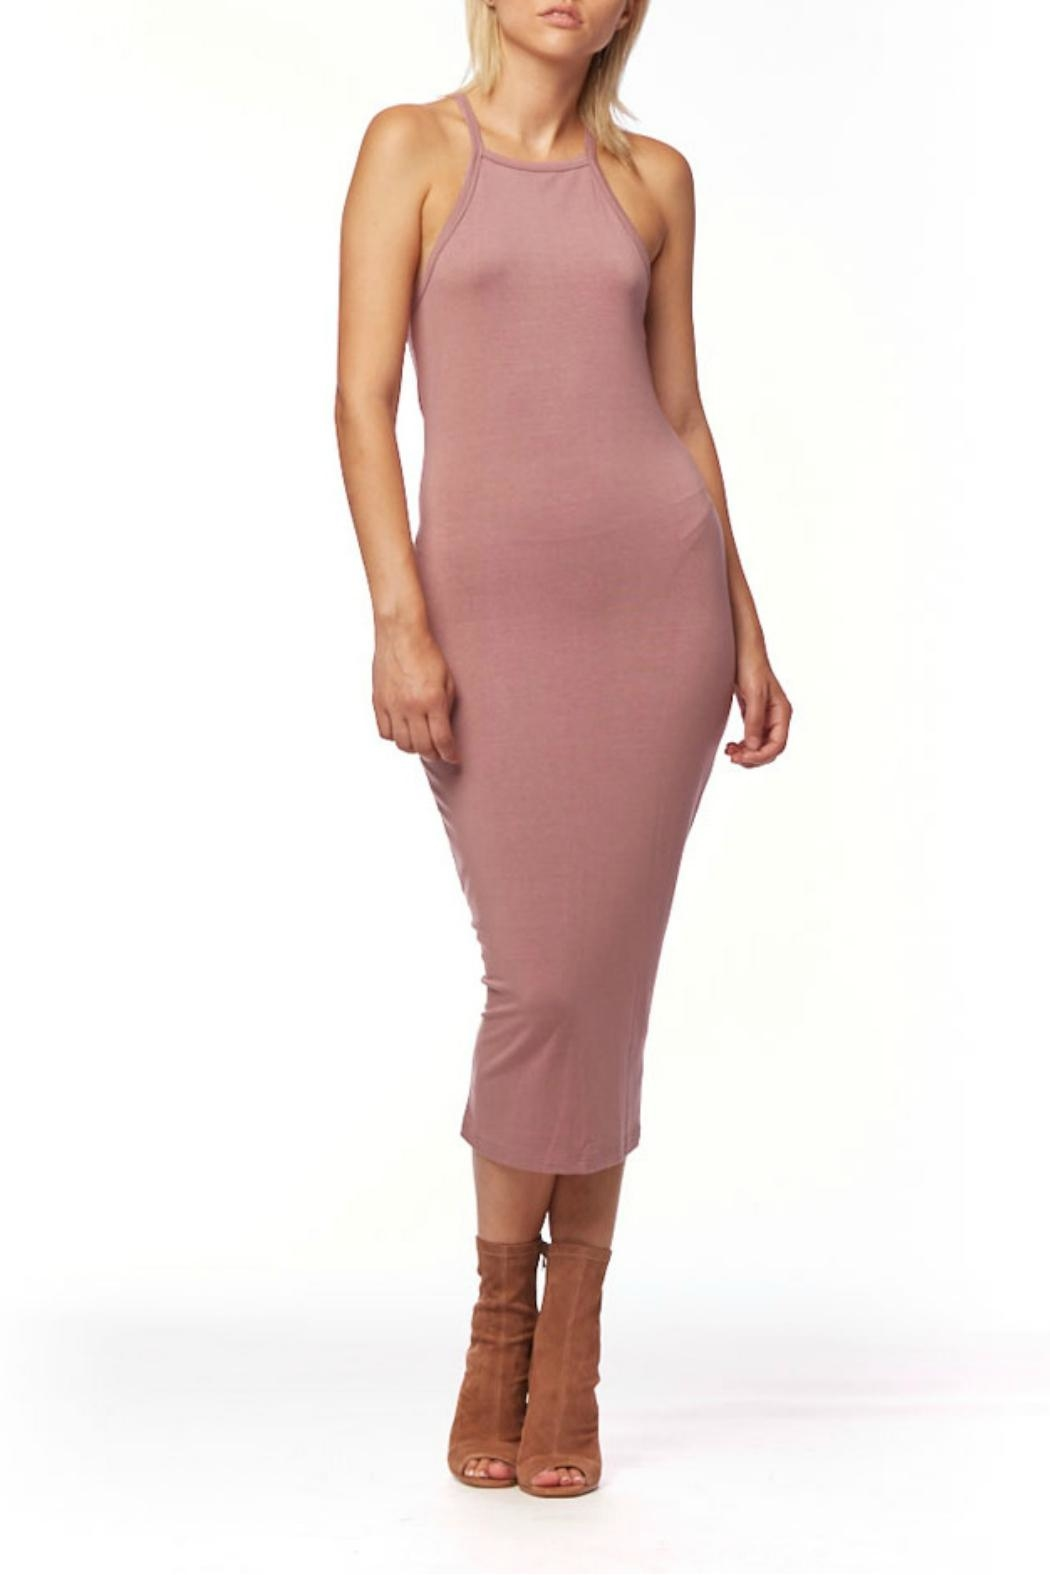 L Fashion Overload Tank Top Midi Dress - Front Cropped Image